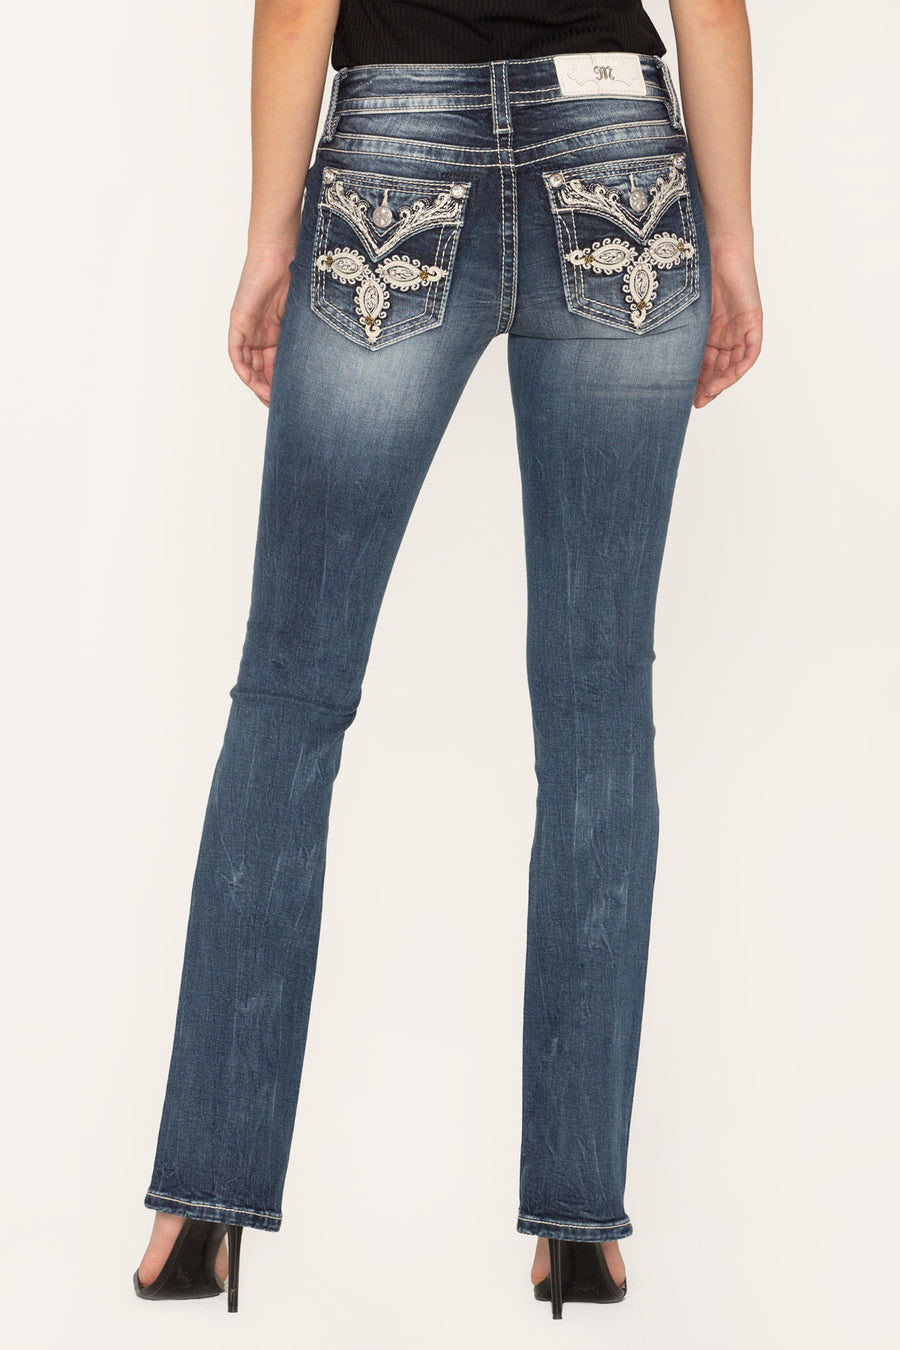 WAVE OF LOVE SLIM BOOTCUT JEANS